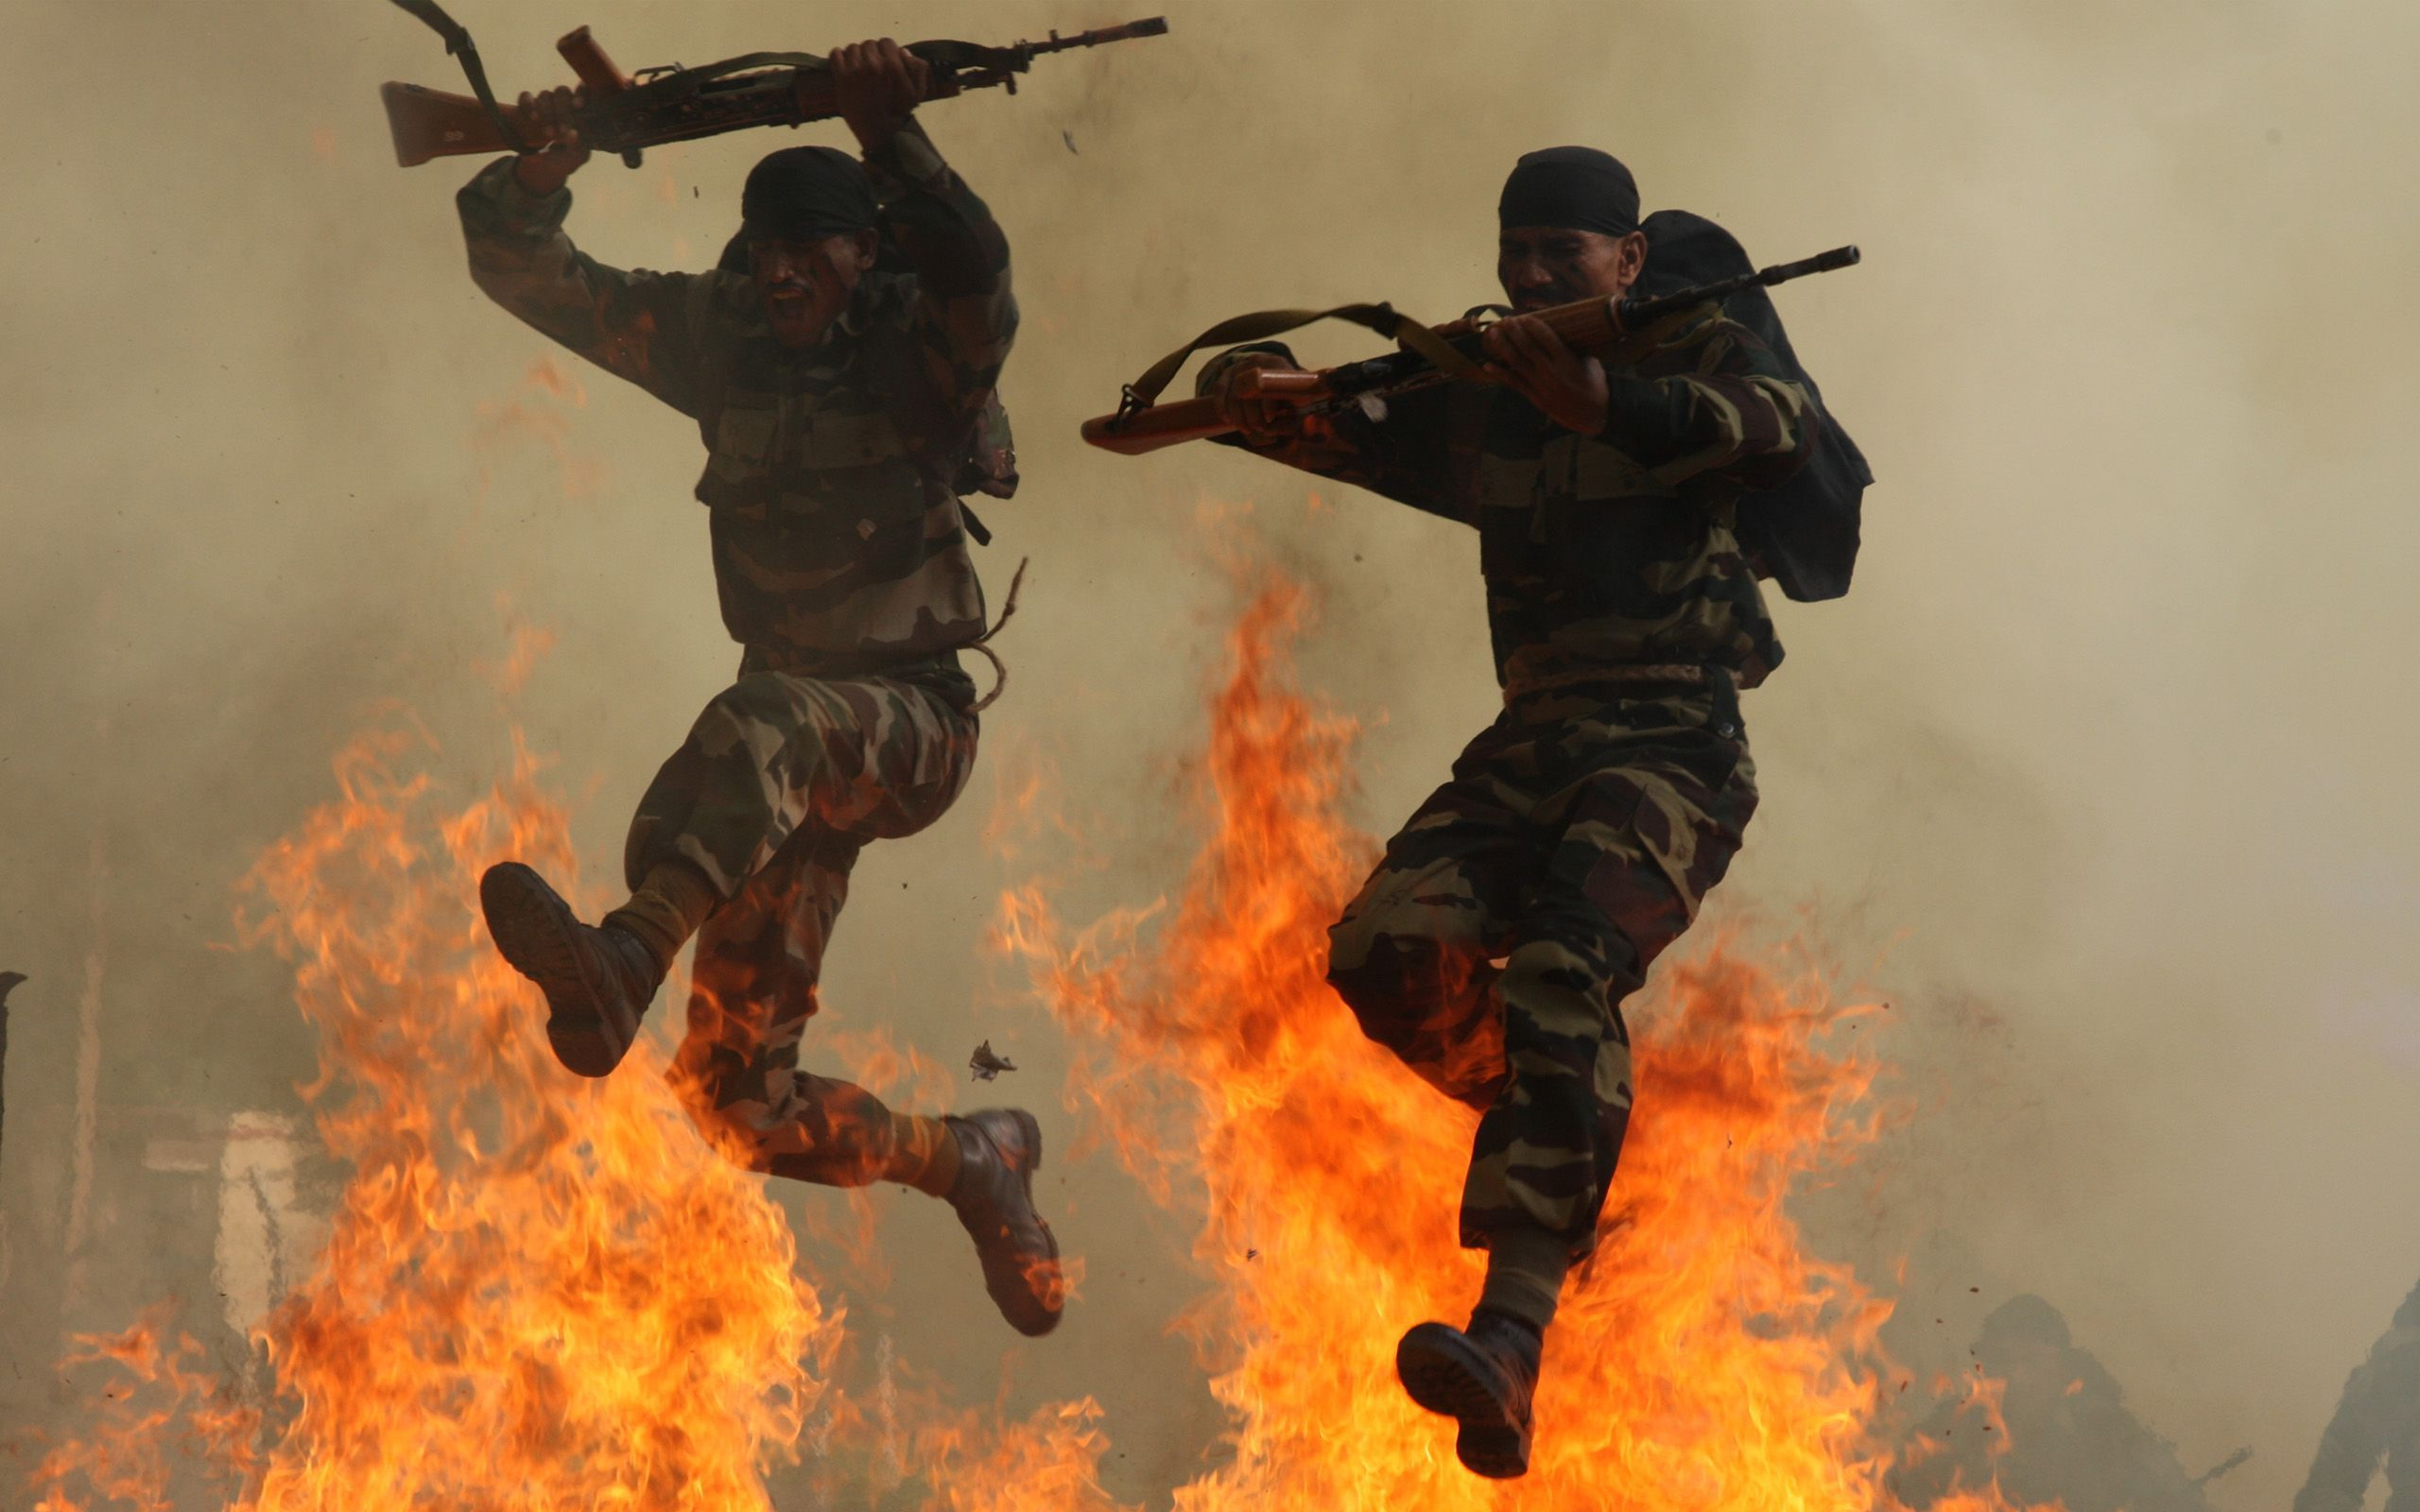 Indian Army Wallpapers For Mobile Phones Download Hd Wallpaper Indian Army Wallpapers Army Wallpaper Special Forces Logo